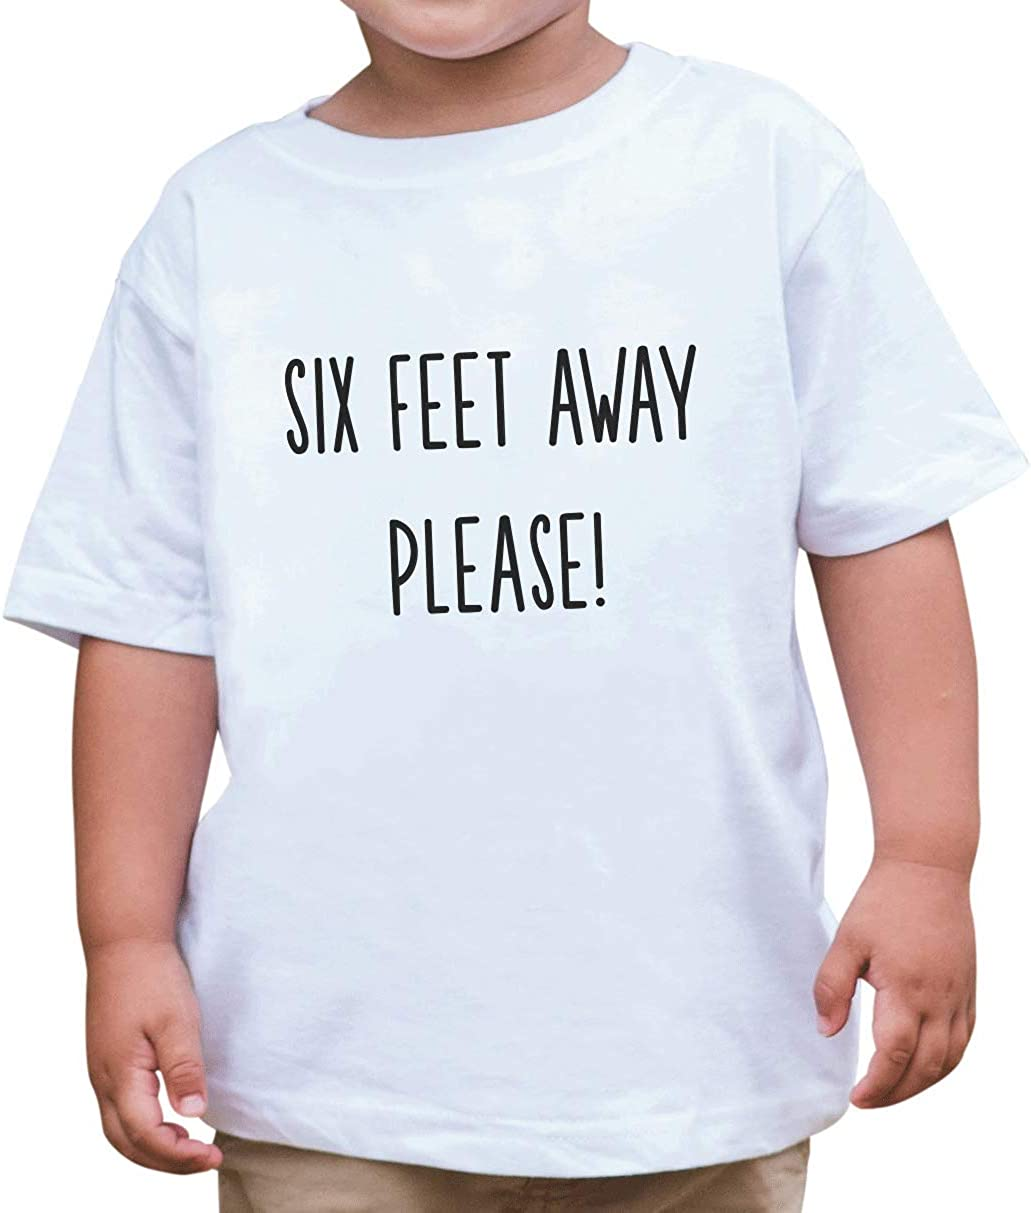 7 ate 9 Apparel Kids Funny Social Distancing Quarantine Outfit